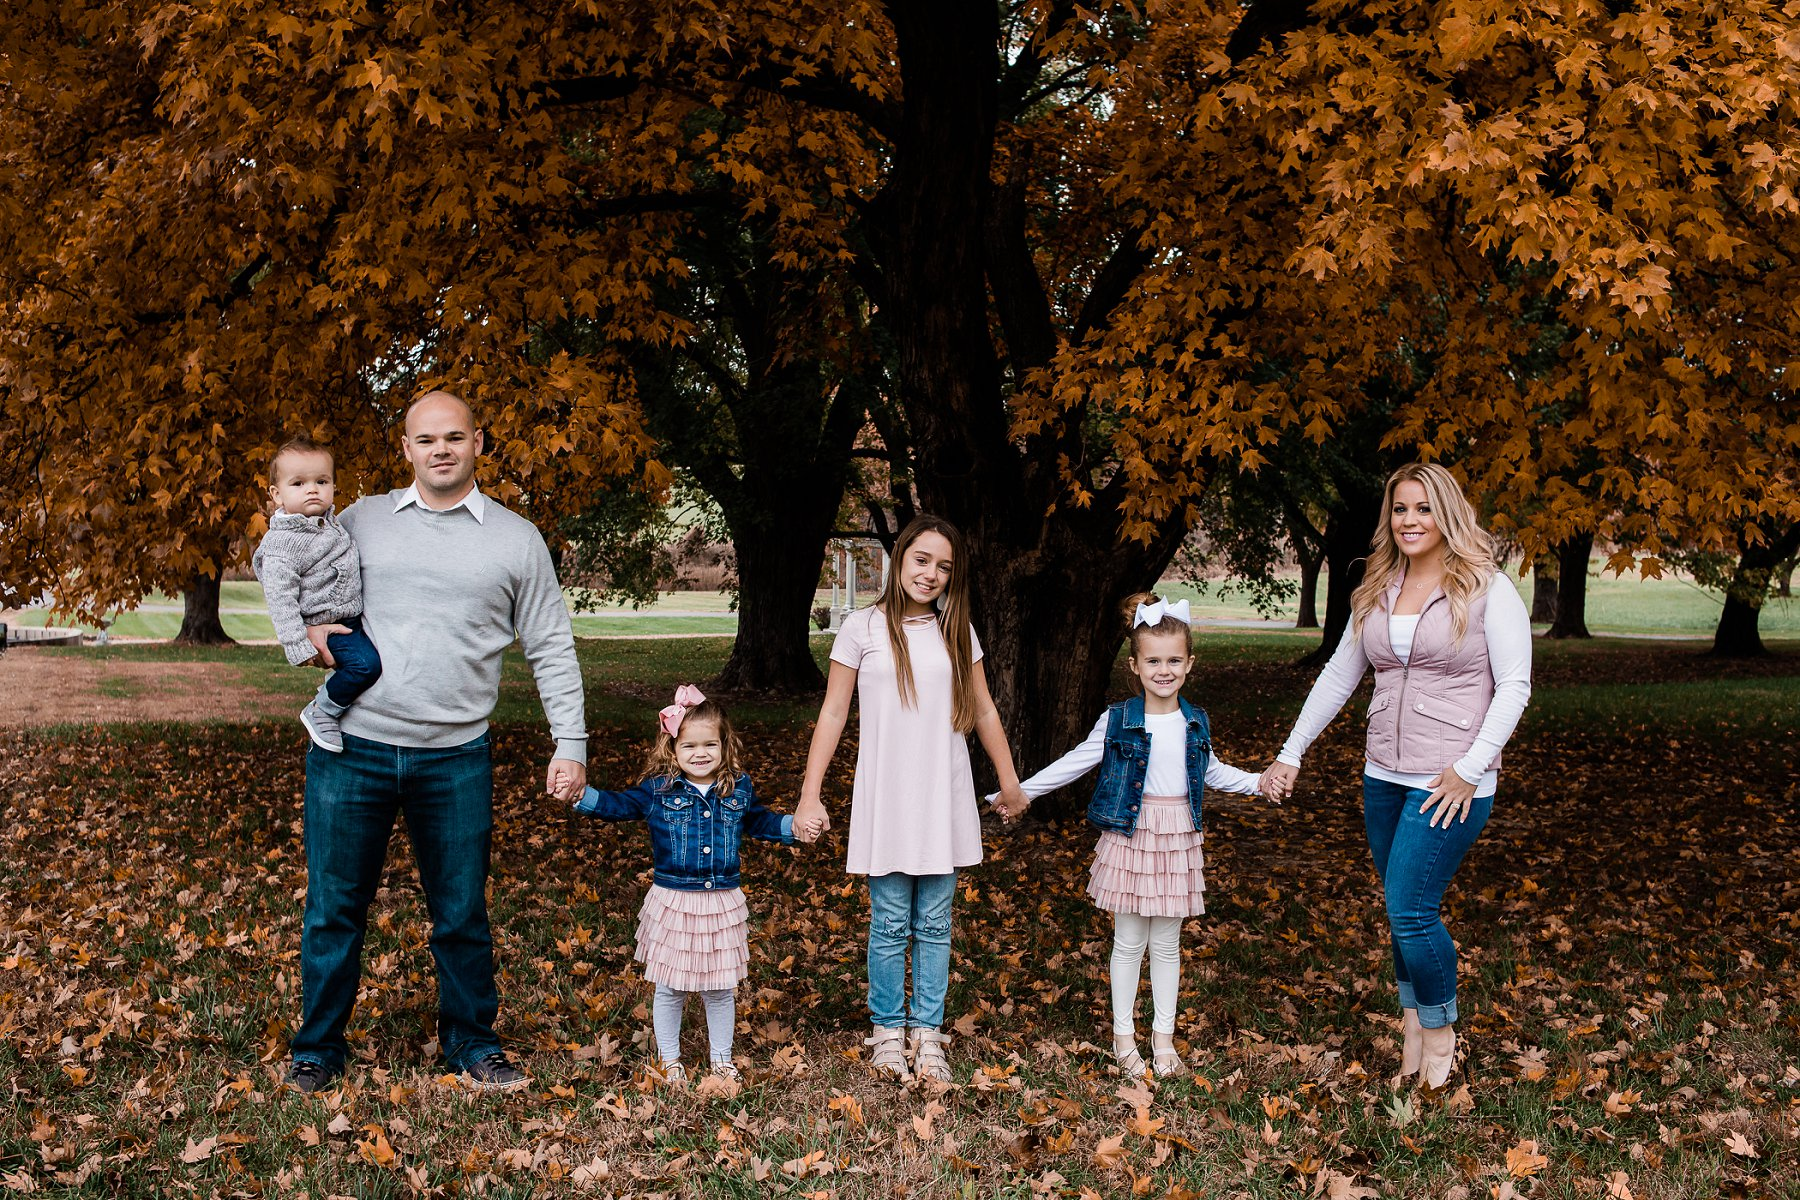 Fall Family Photography at Belvoir WInery by Family Photographer in Kansas City, Merry Ohler (1)